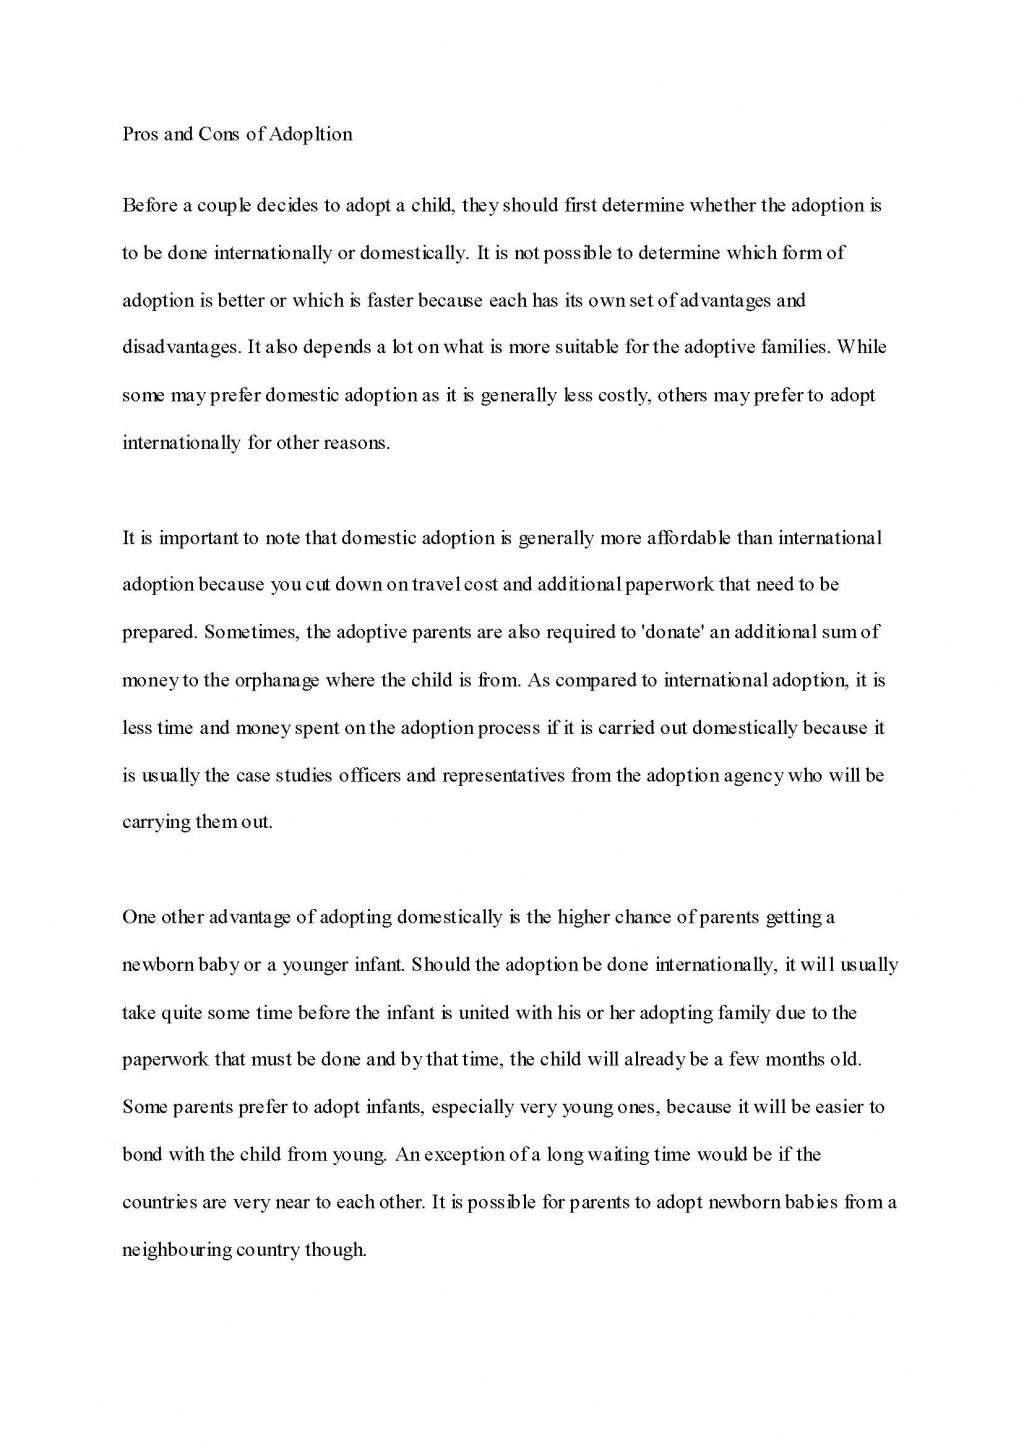 016 Examples Of Persuasive Essays Essay Example Adoption Excellent For Fifth Graders Written By 5th 3rd Grade Large